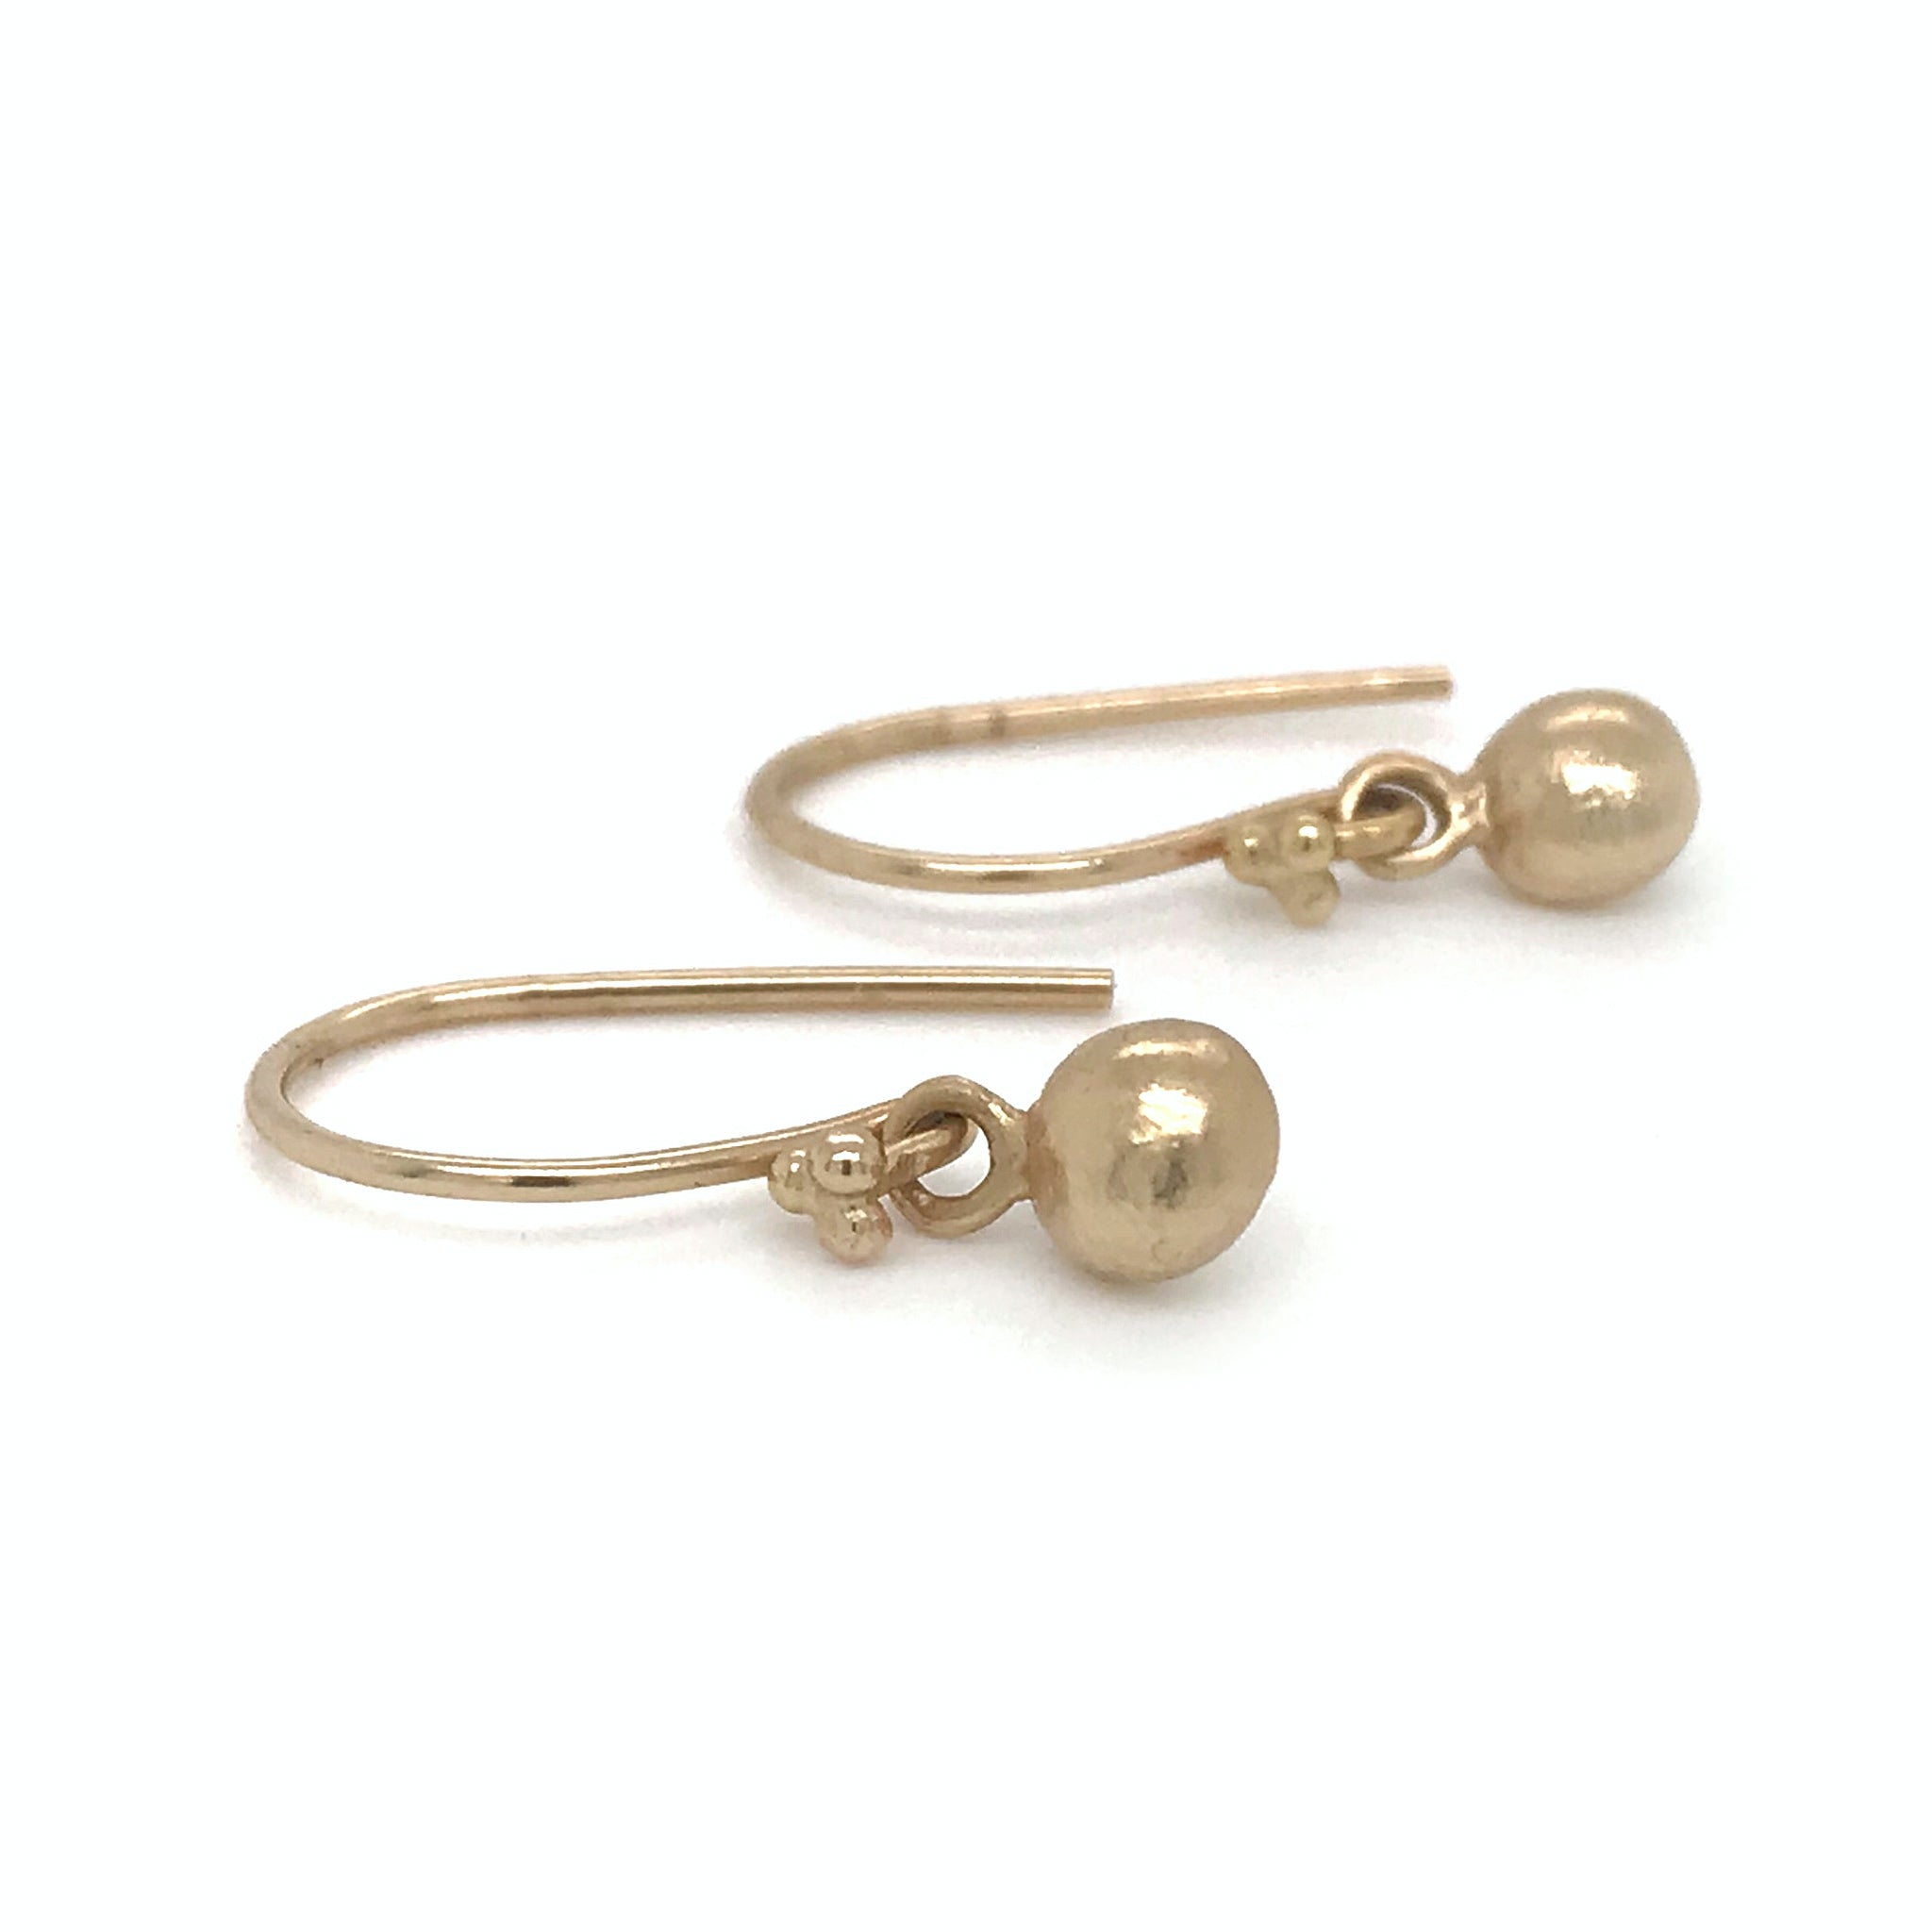 14k gold pebble charm earrings kriket broadhurst jewellery